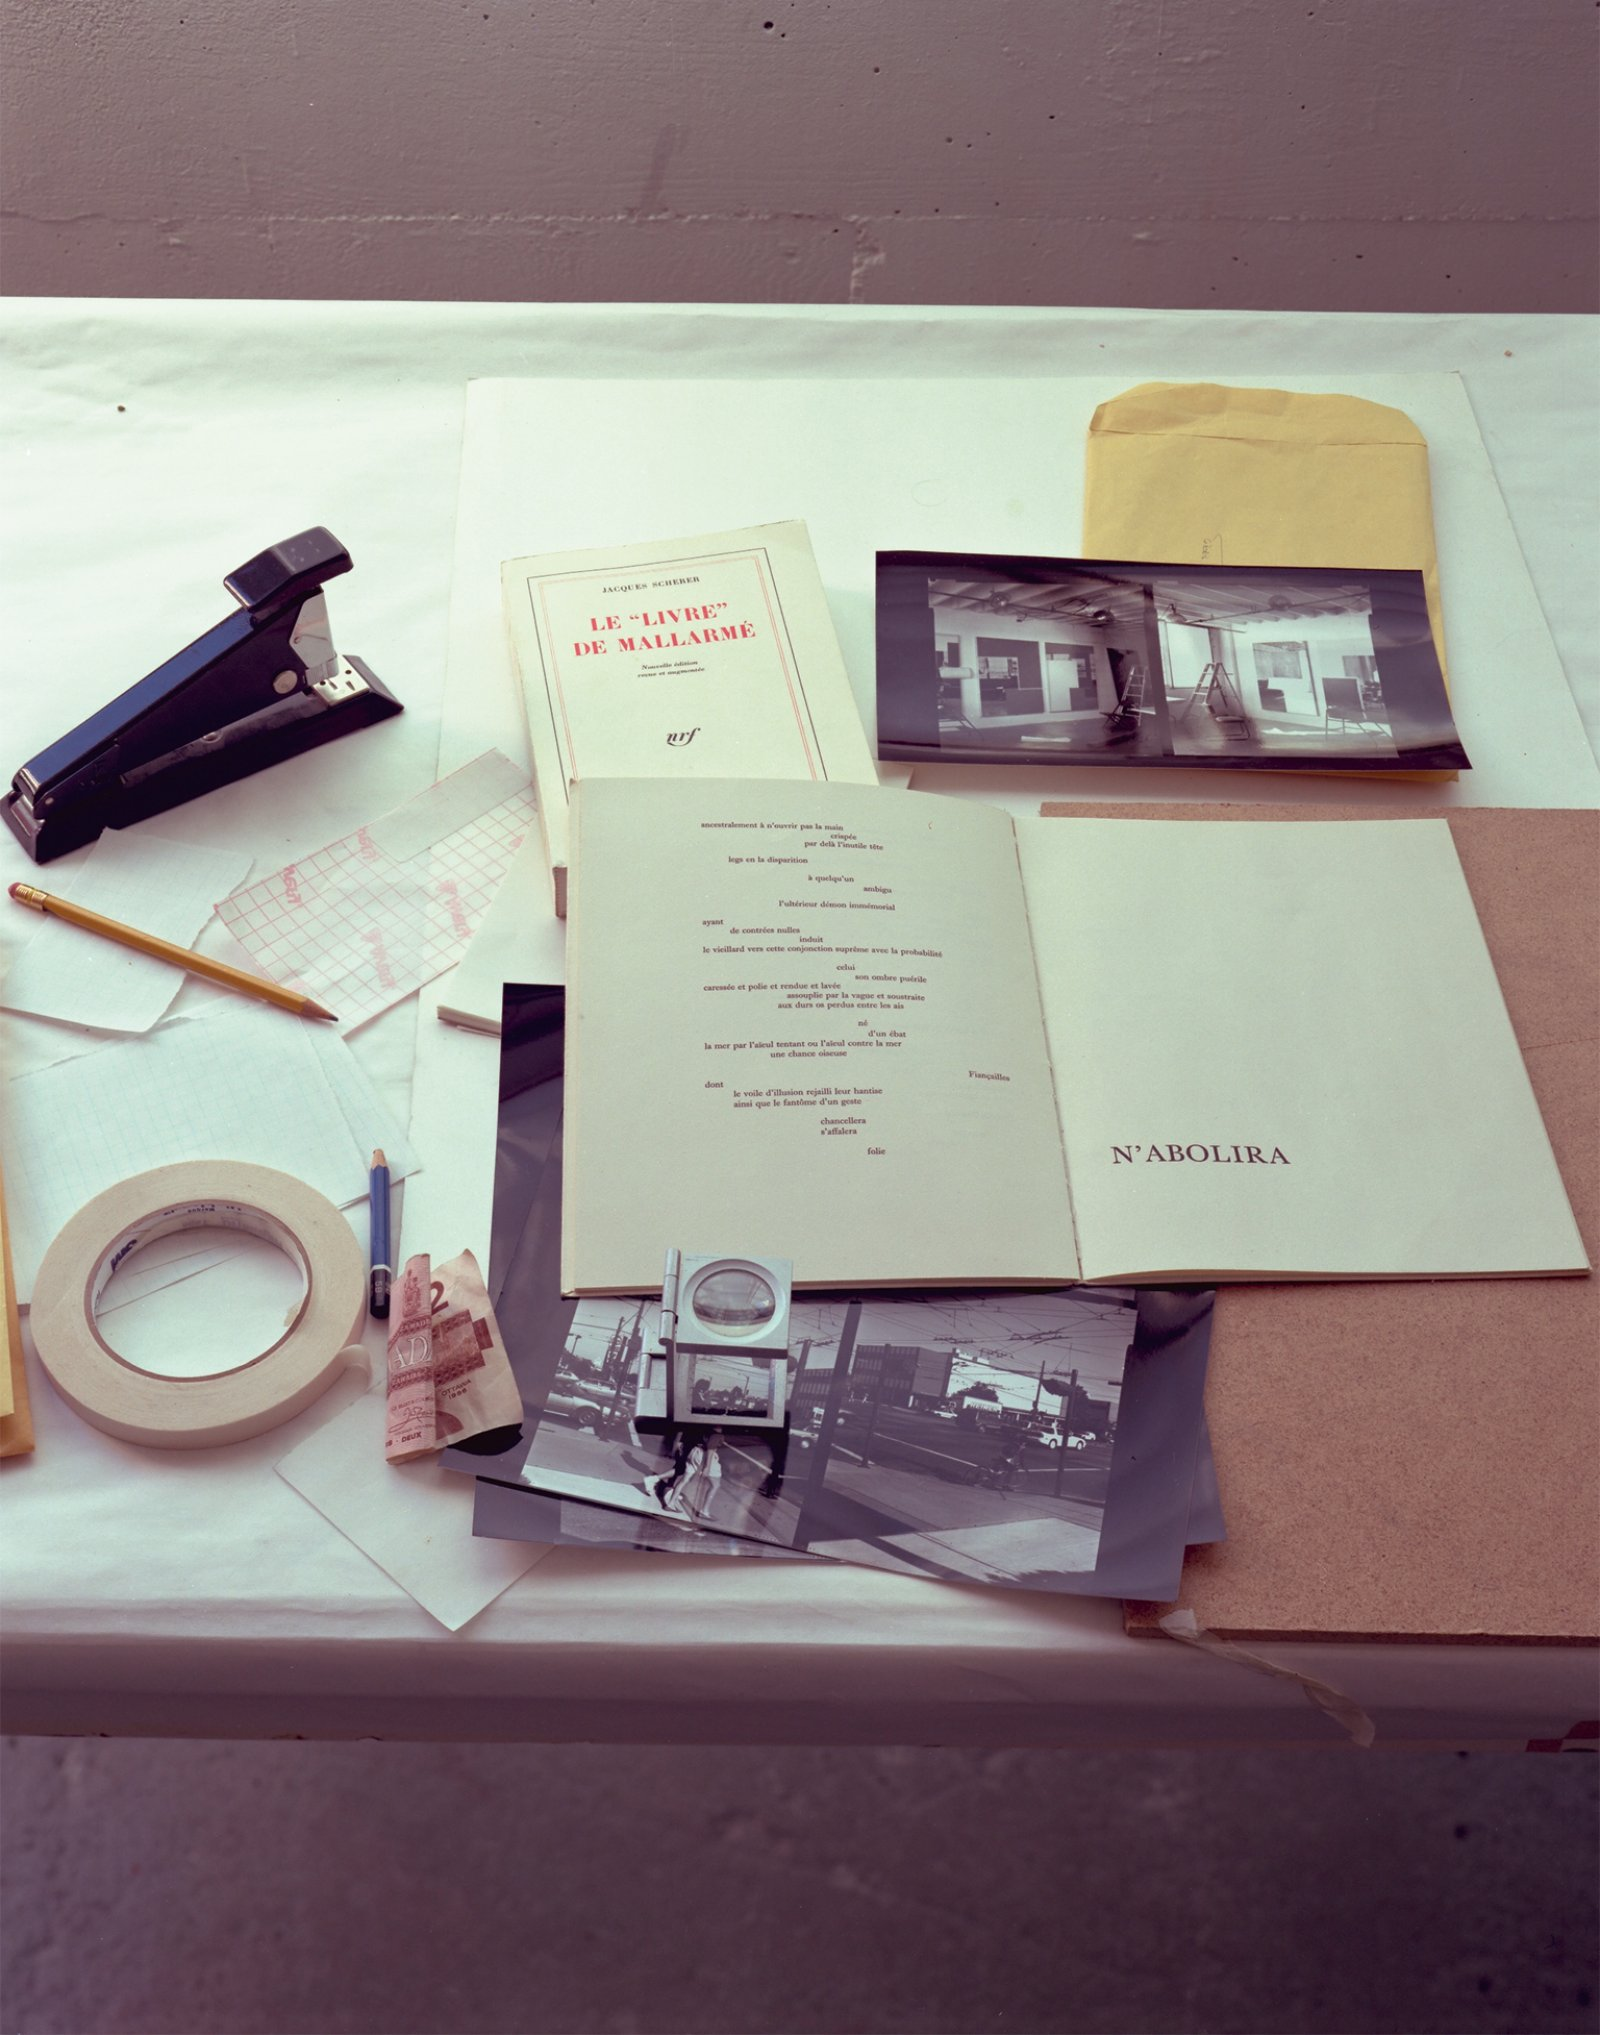 Ian Wallace, In the Studio (Le Livre), 1993–2005, inkjet print, 39 x 32 in. (100 x 82 cm). Installation view, A Literature of Images, Kunsthalle Zürich, 2008 by Ian Wallace